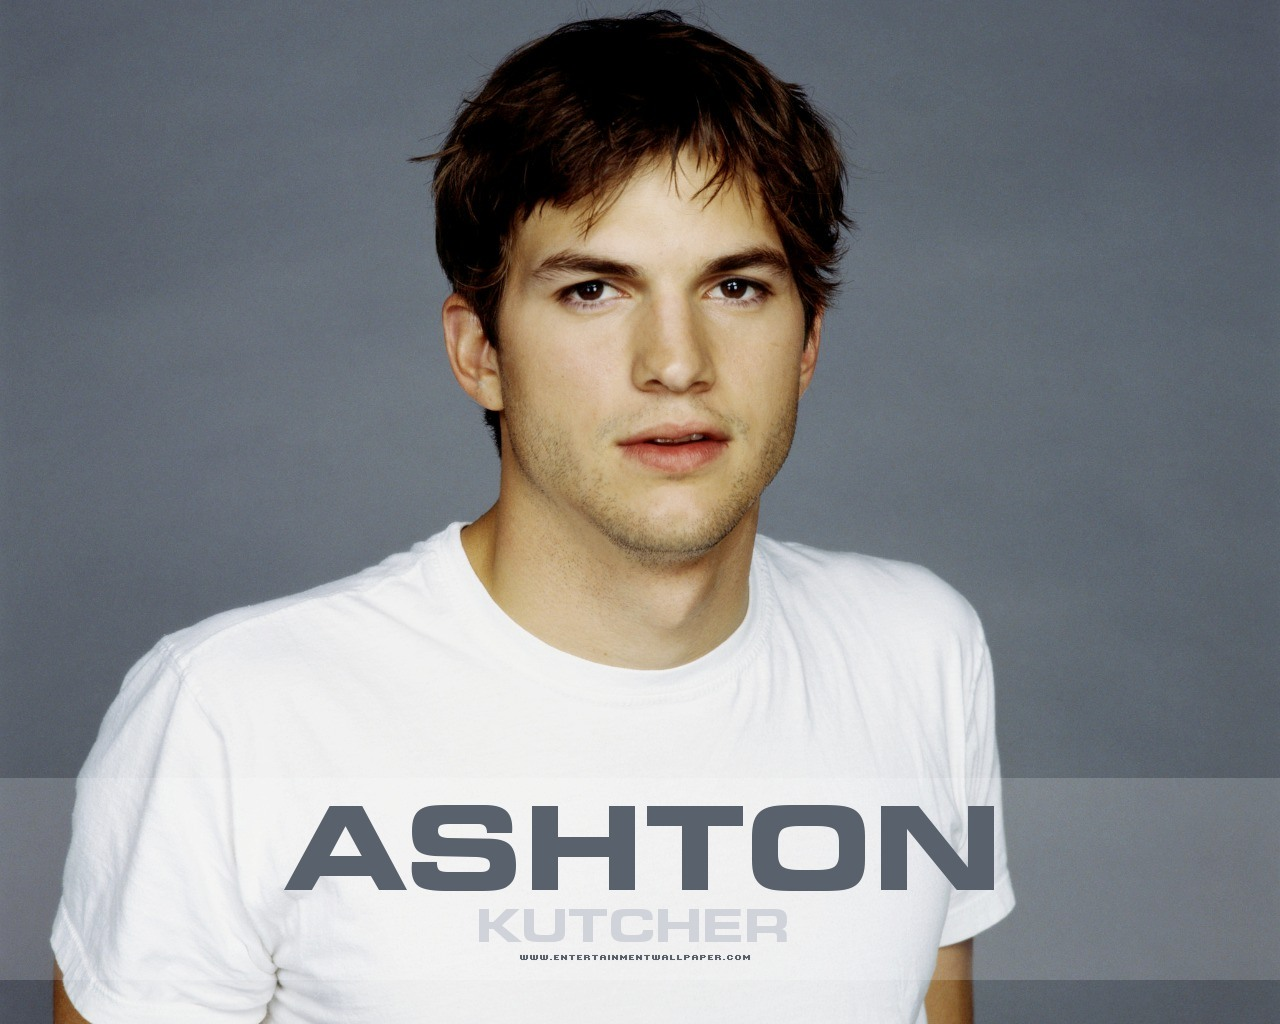 Ashton kutcher ashton kutcher wallpaper 645111 fanpop for The ashton